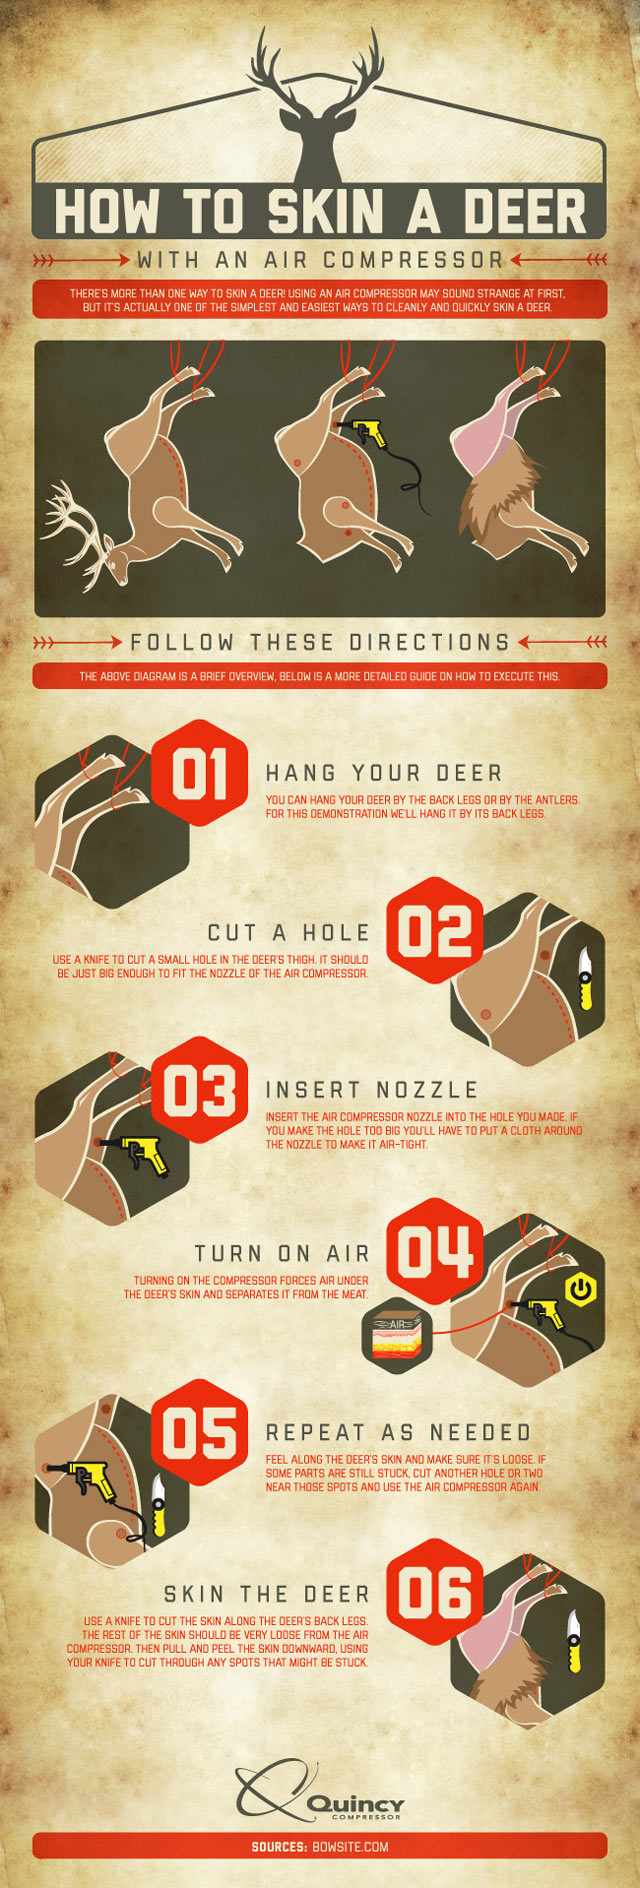 How to skin a deer with an air compressor infographic